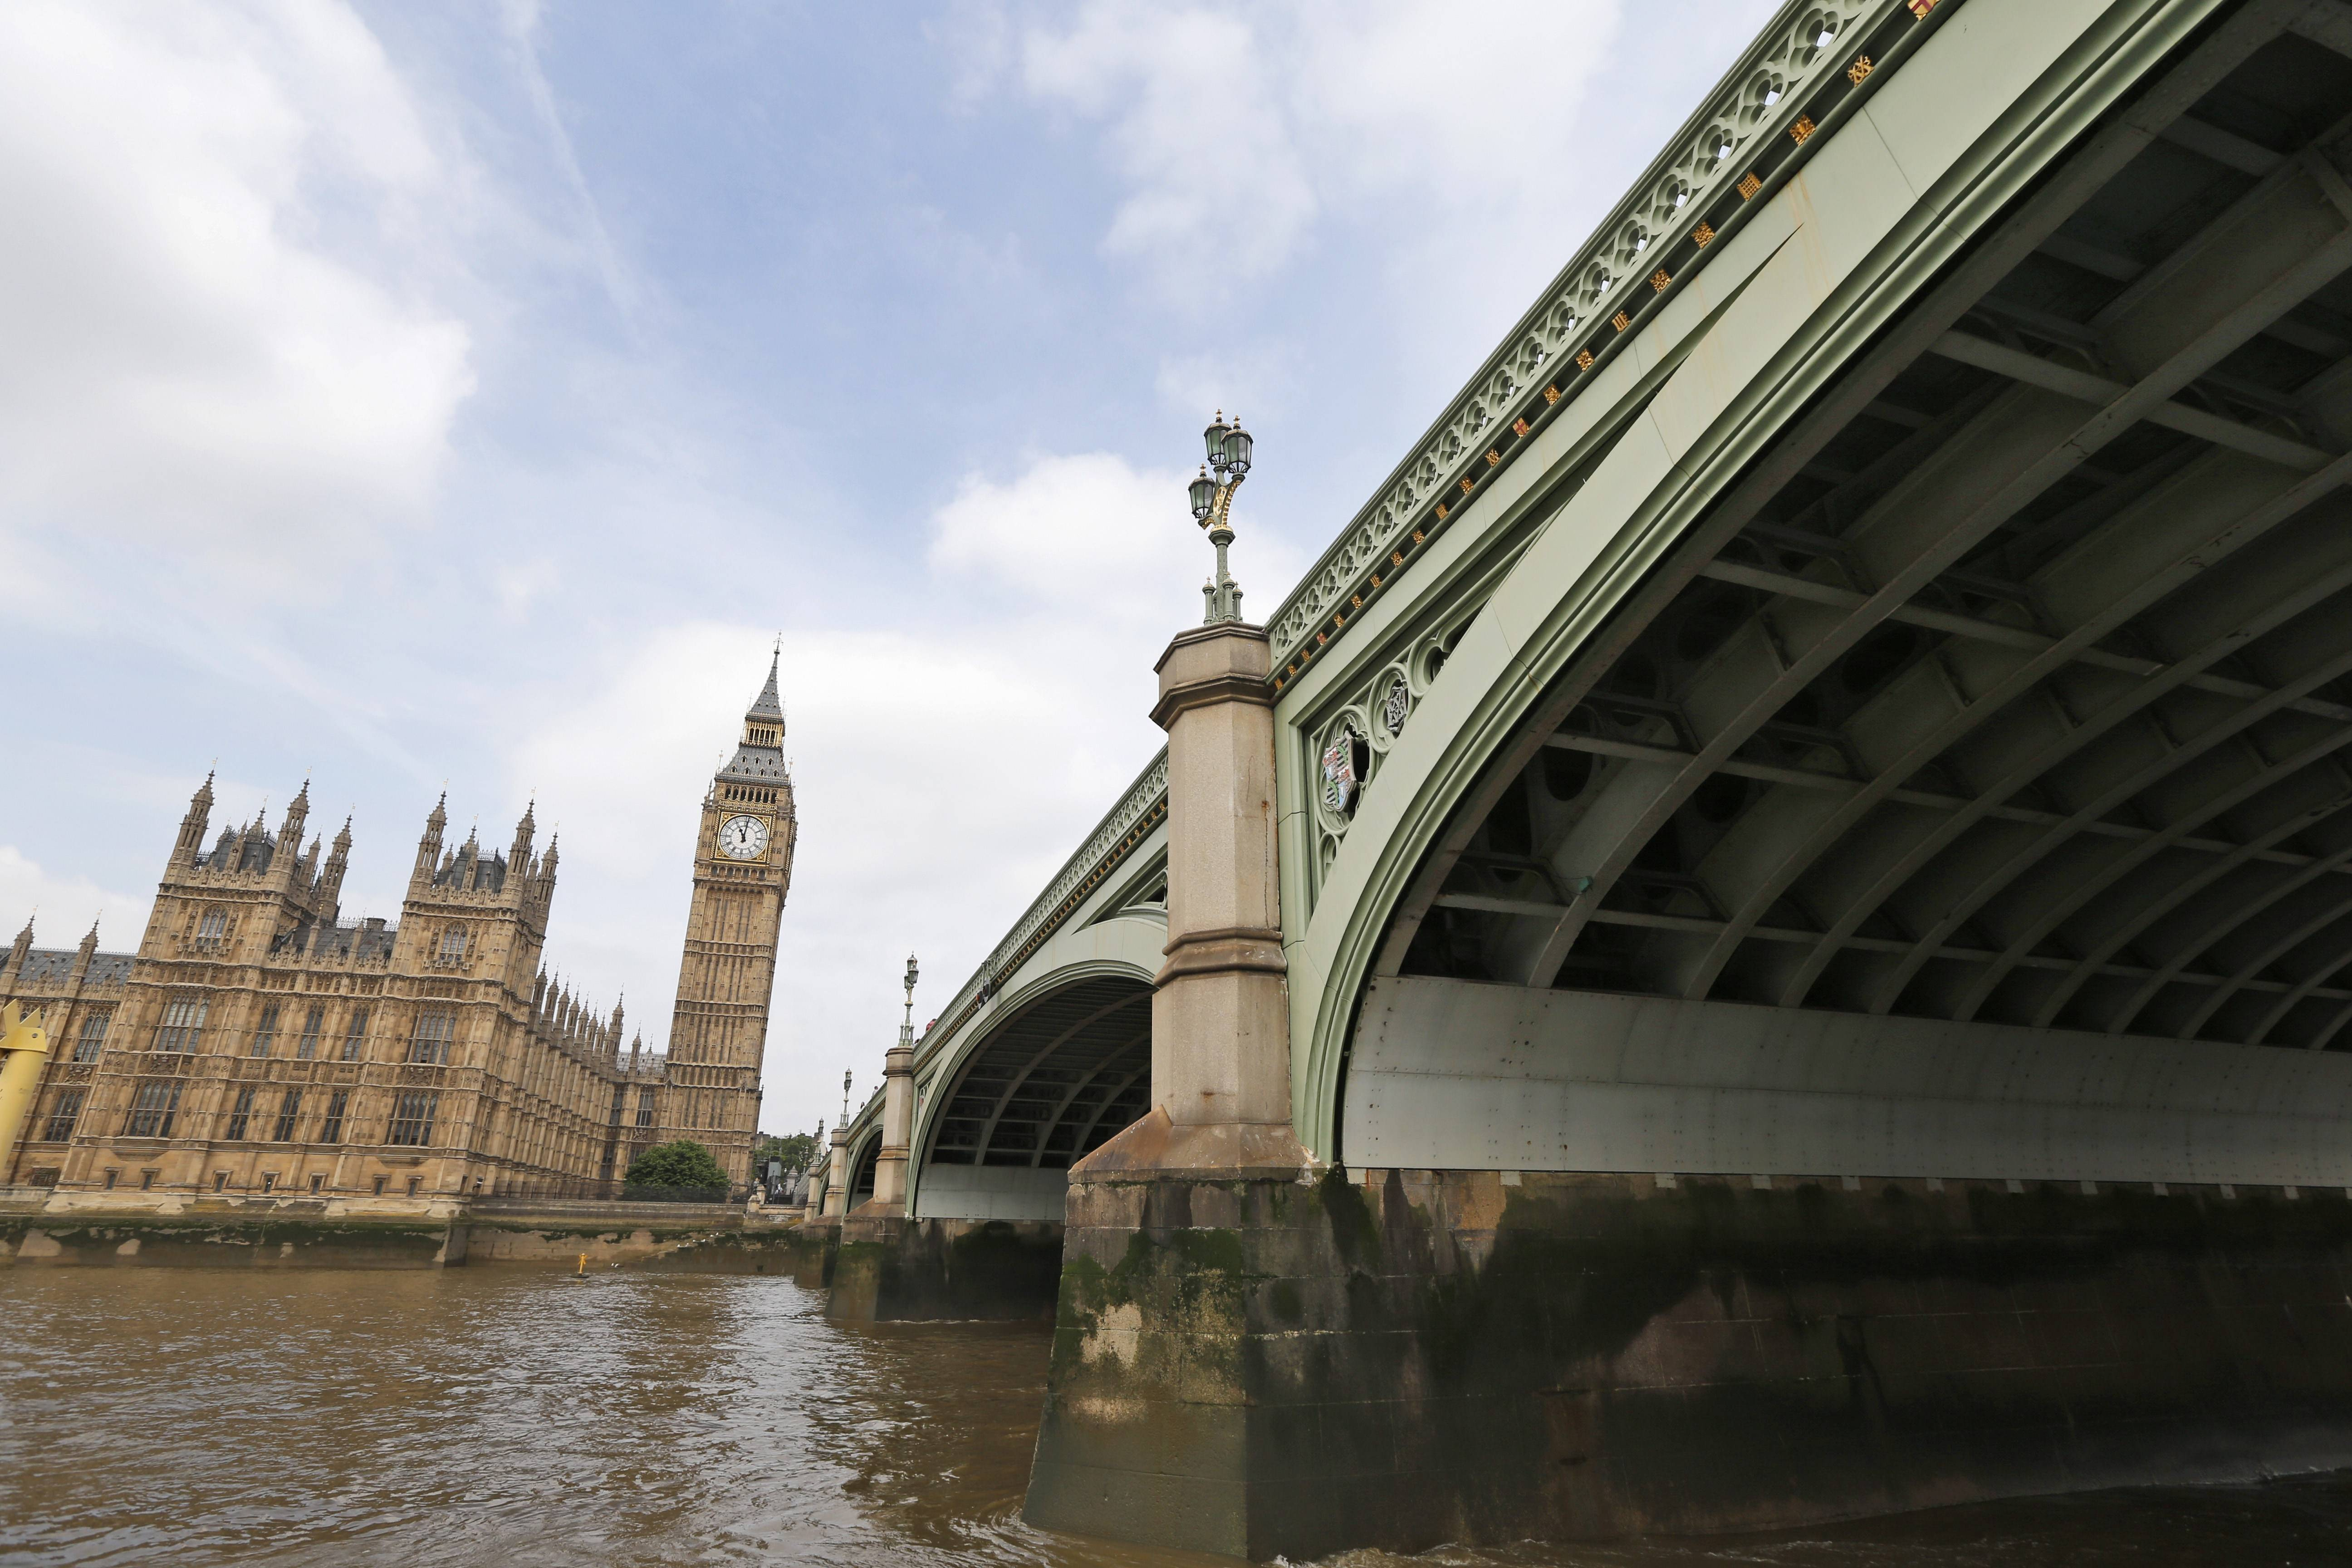 A new exhibition at Museum of London Docklands highlights bridges spanning the River Thames, like the Westminster Bridge, which is closes to the Houses of Parliament.